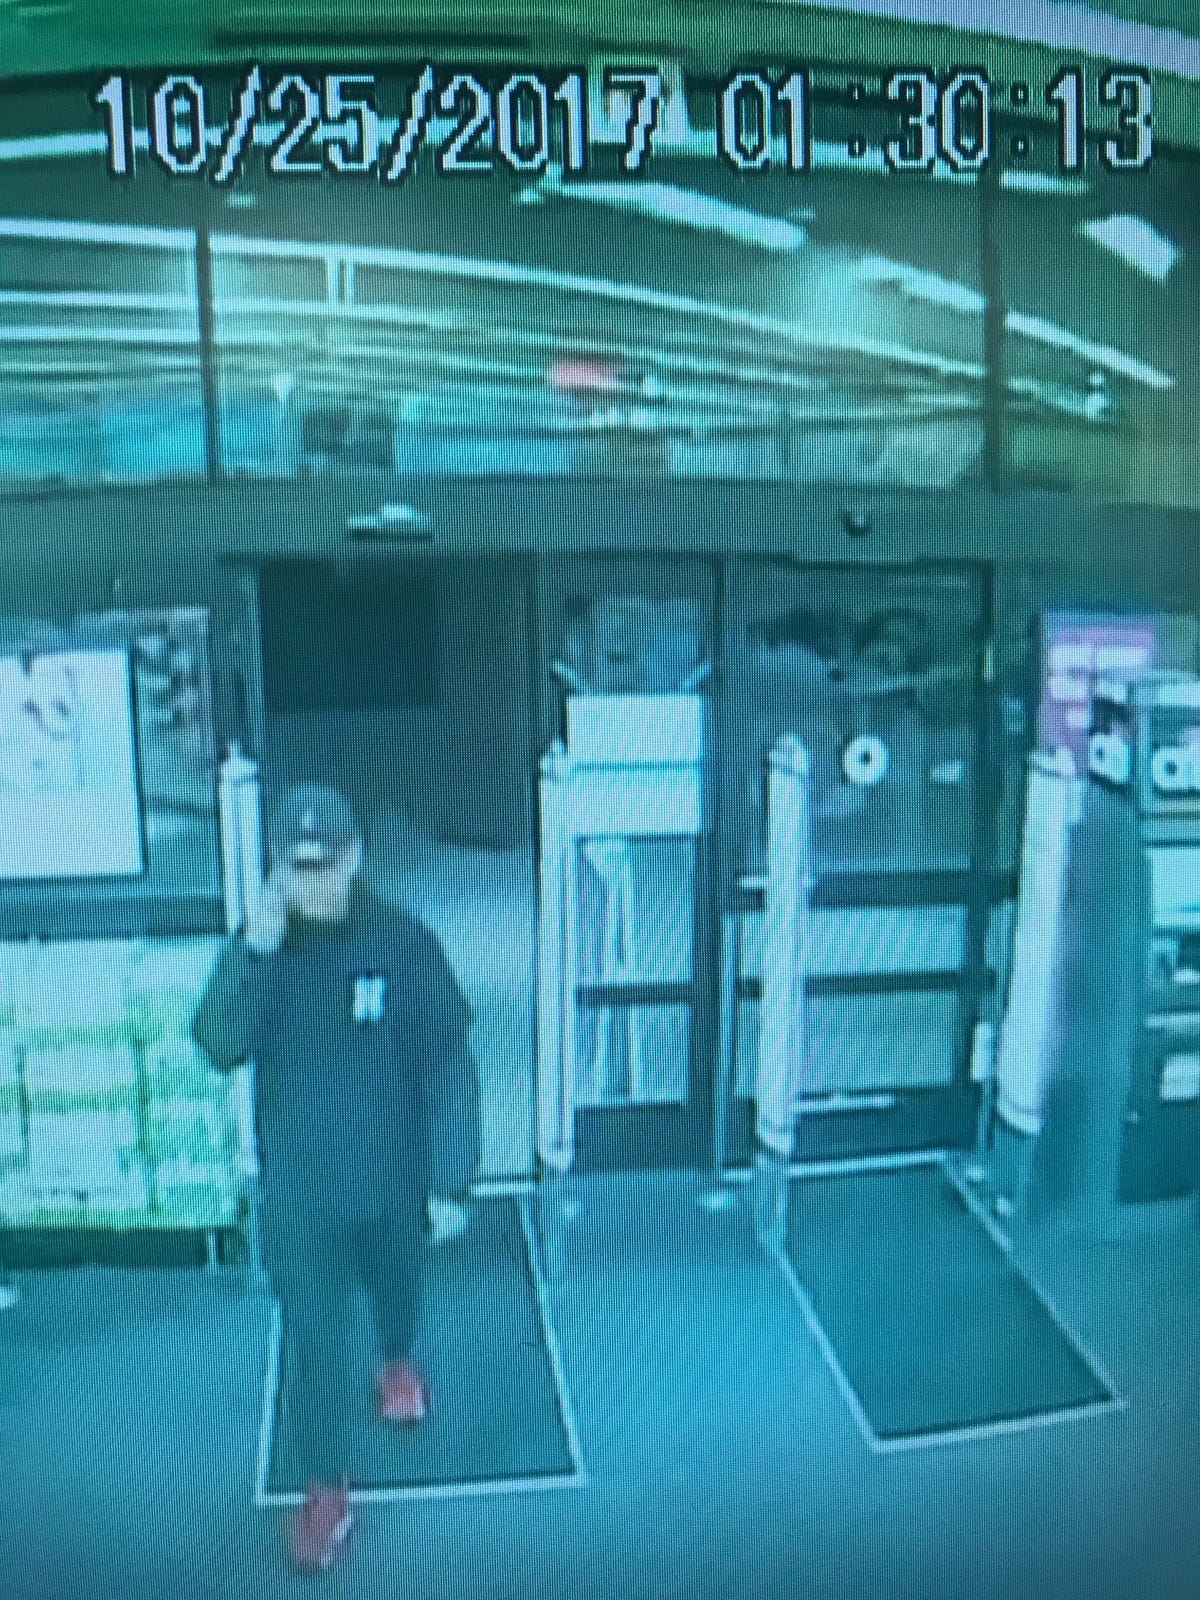 East Brunswick Police searching for suspects in Walgreens